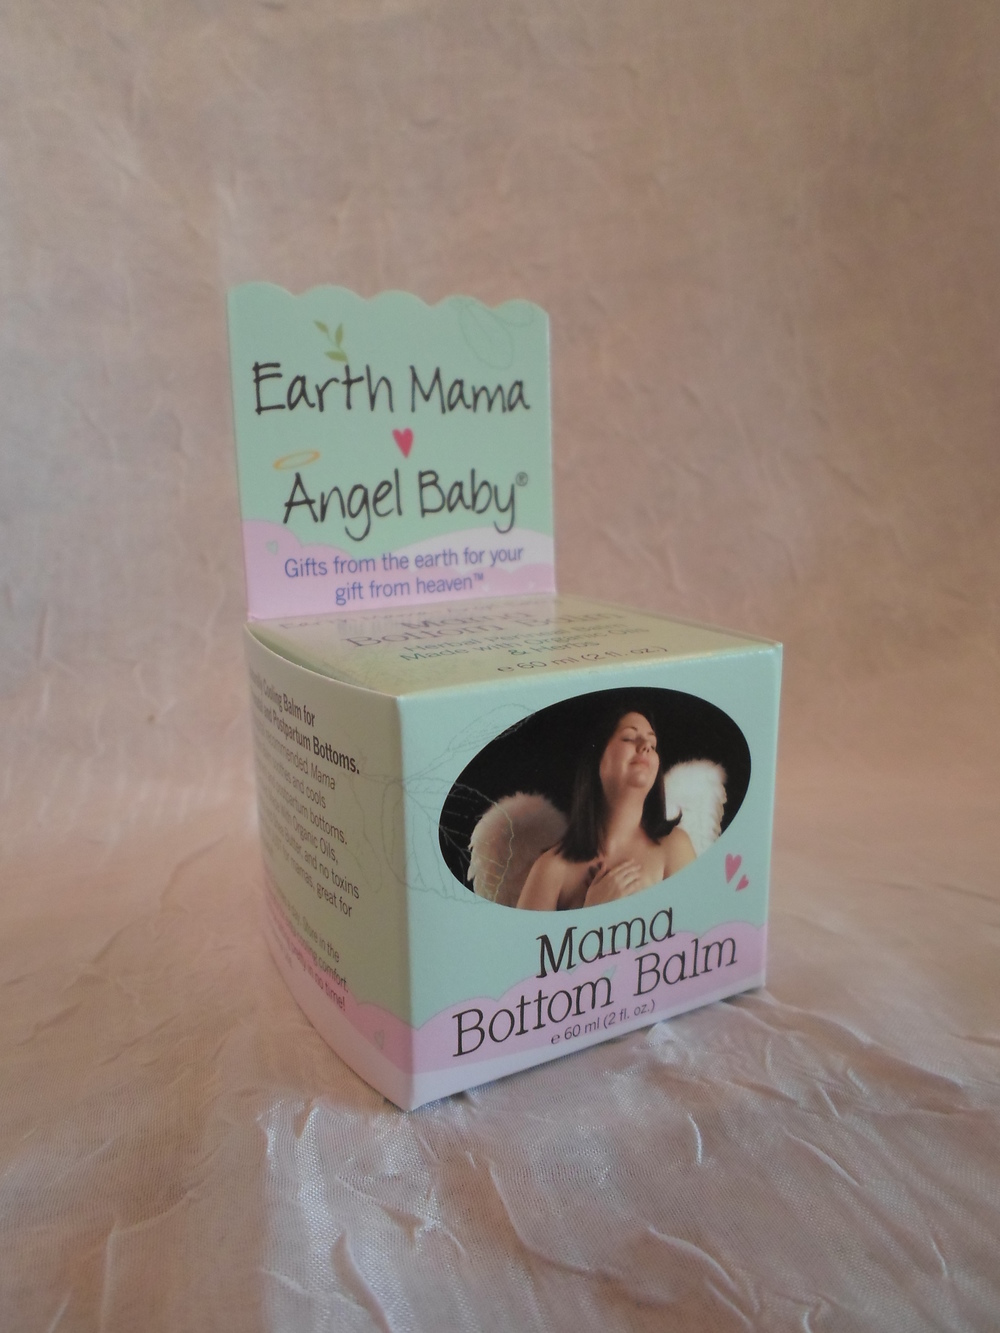 Earth Mama Angel Baby Bottom Balm   for Mama    $15.95    Wants 1